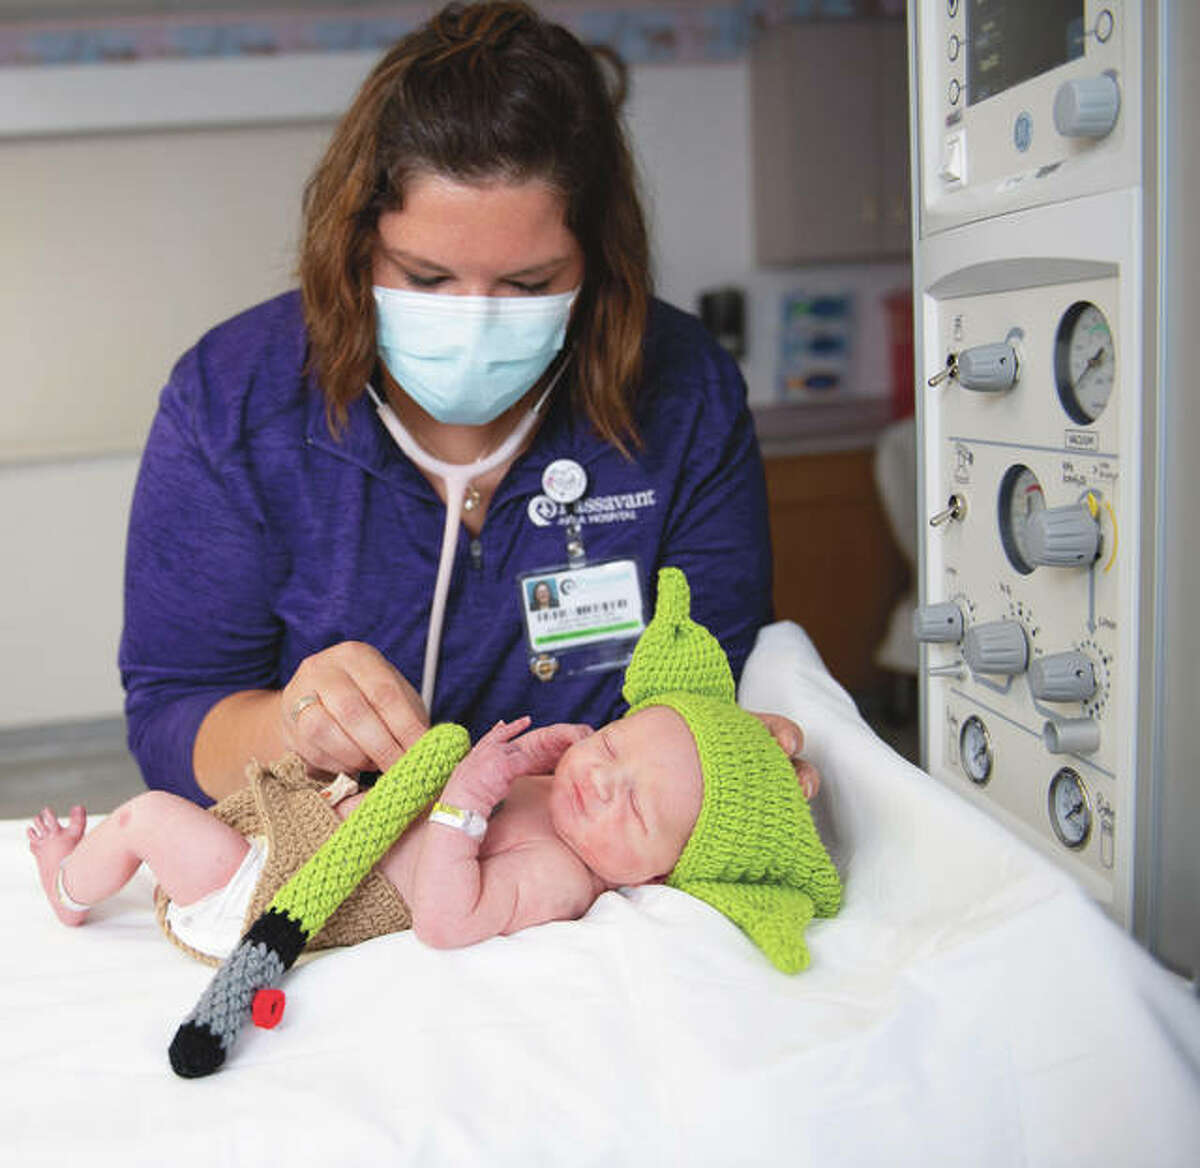 A Passavant Area Hospital nurse tends to newborn Joseph Ryan Bull, born to John and Courtney Bull at 8:59 a.m. Tuesday. Memorial Health System hospitals celebrated Tuesday births with Baby Yoda outfits in celebration of Star Wars Day, when the catch-phrase